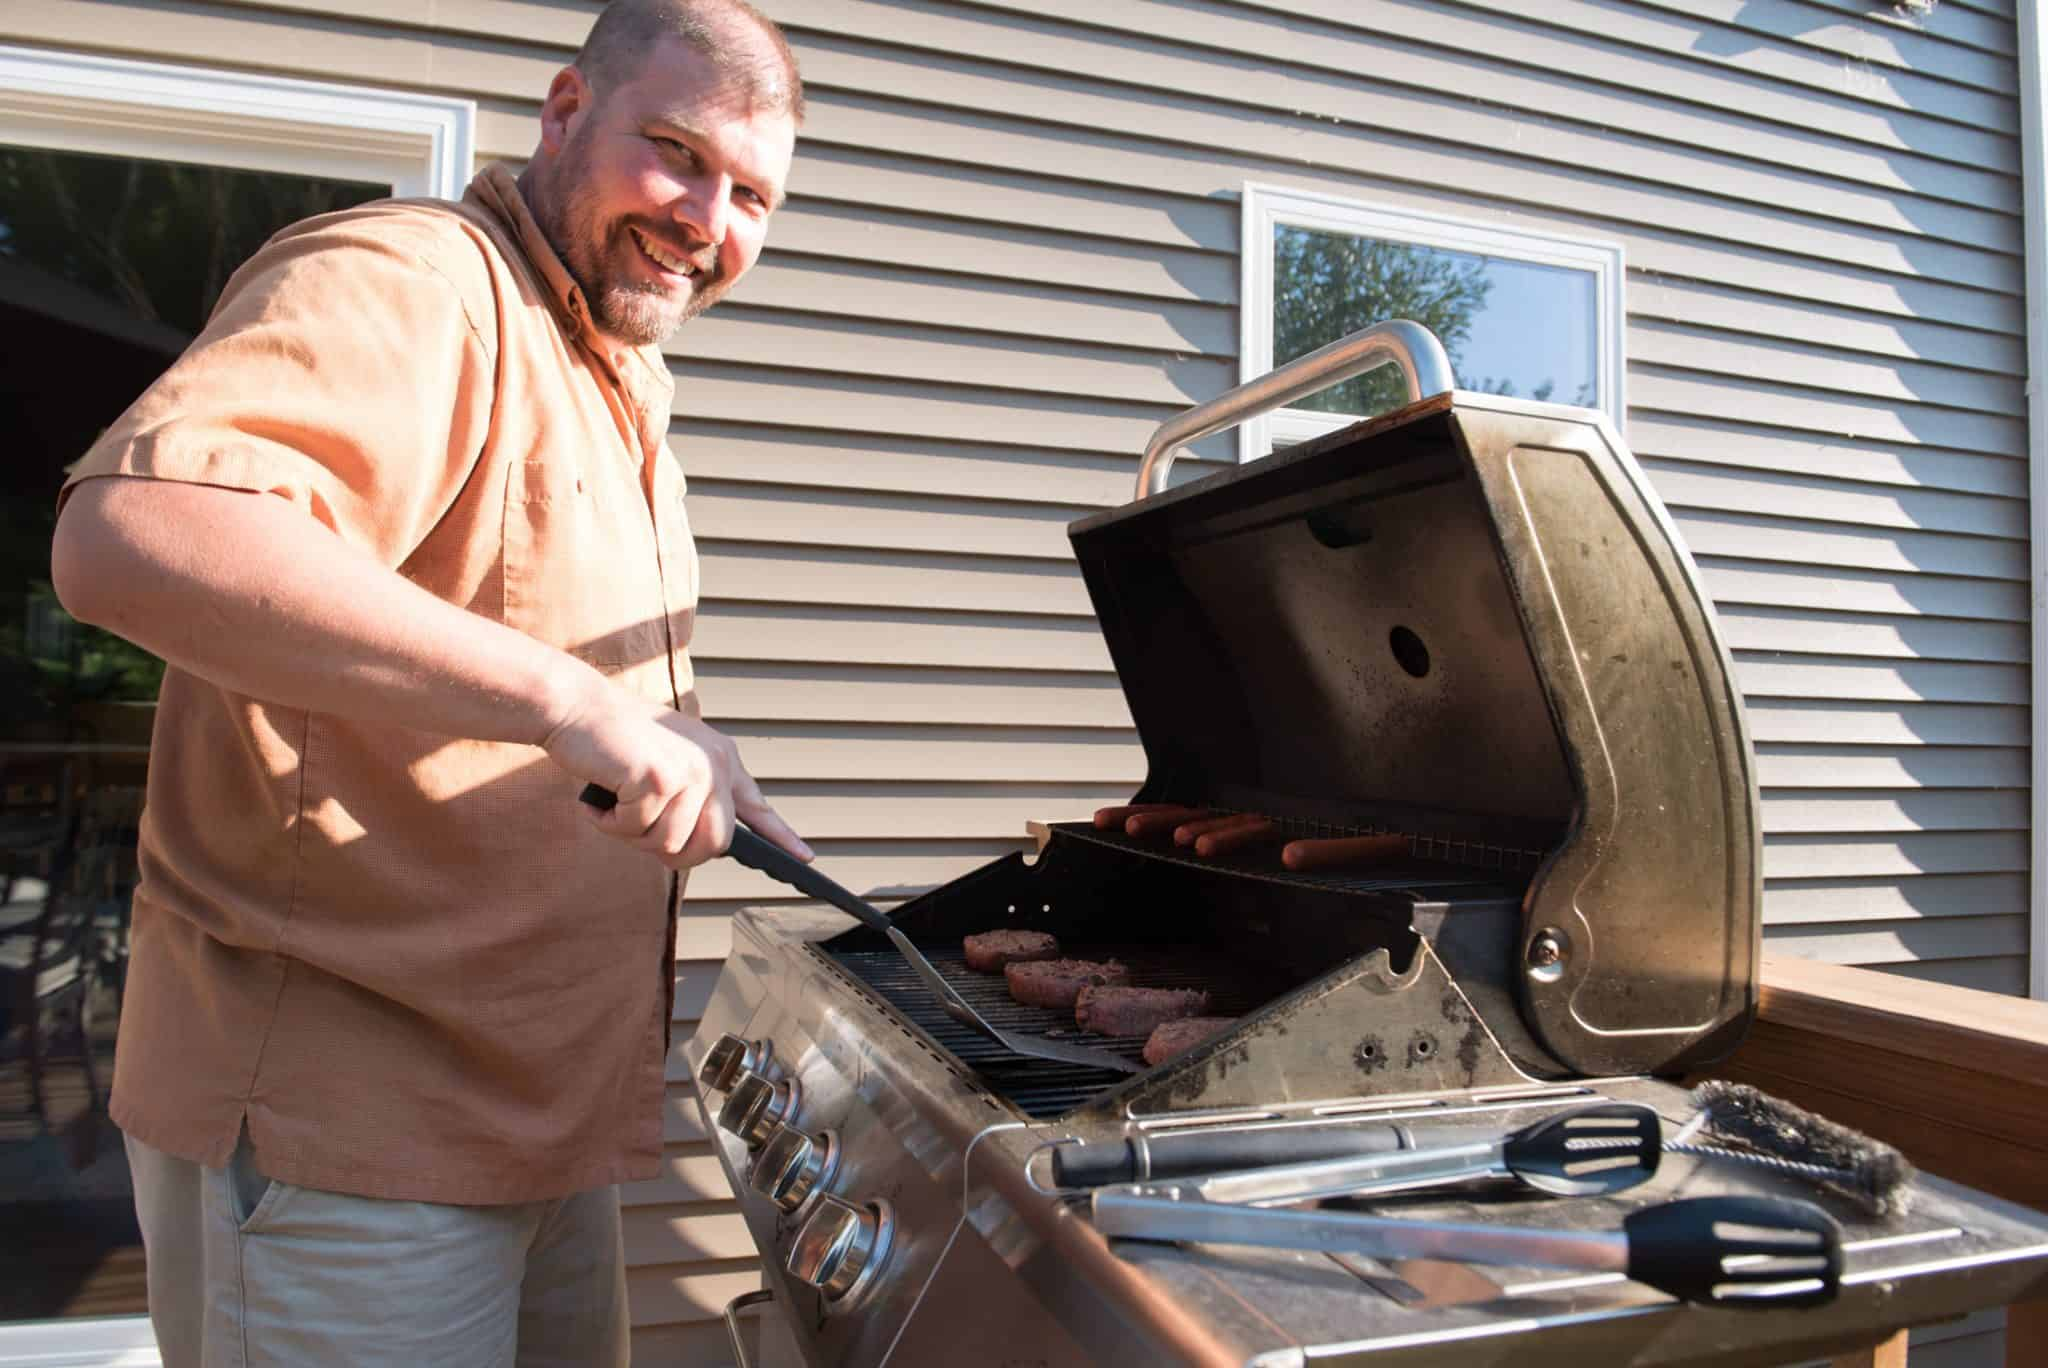 Grilling hamburgers for the Apex Filling Systems family cookout